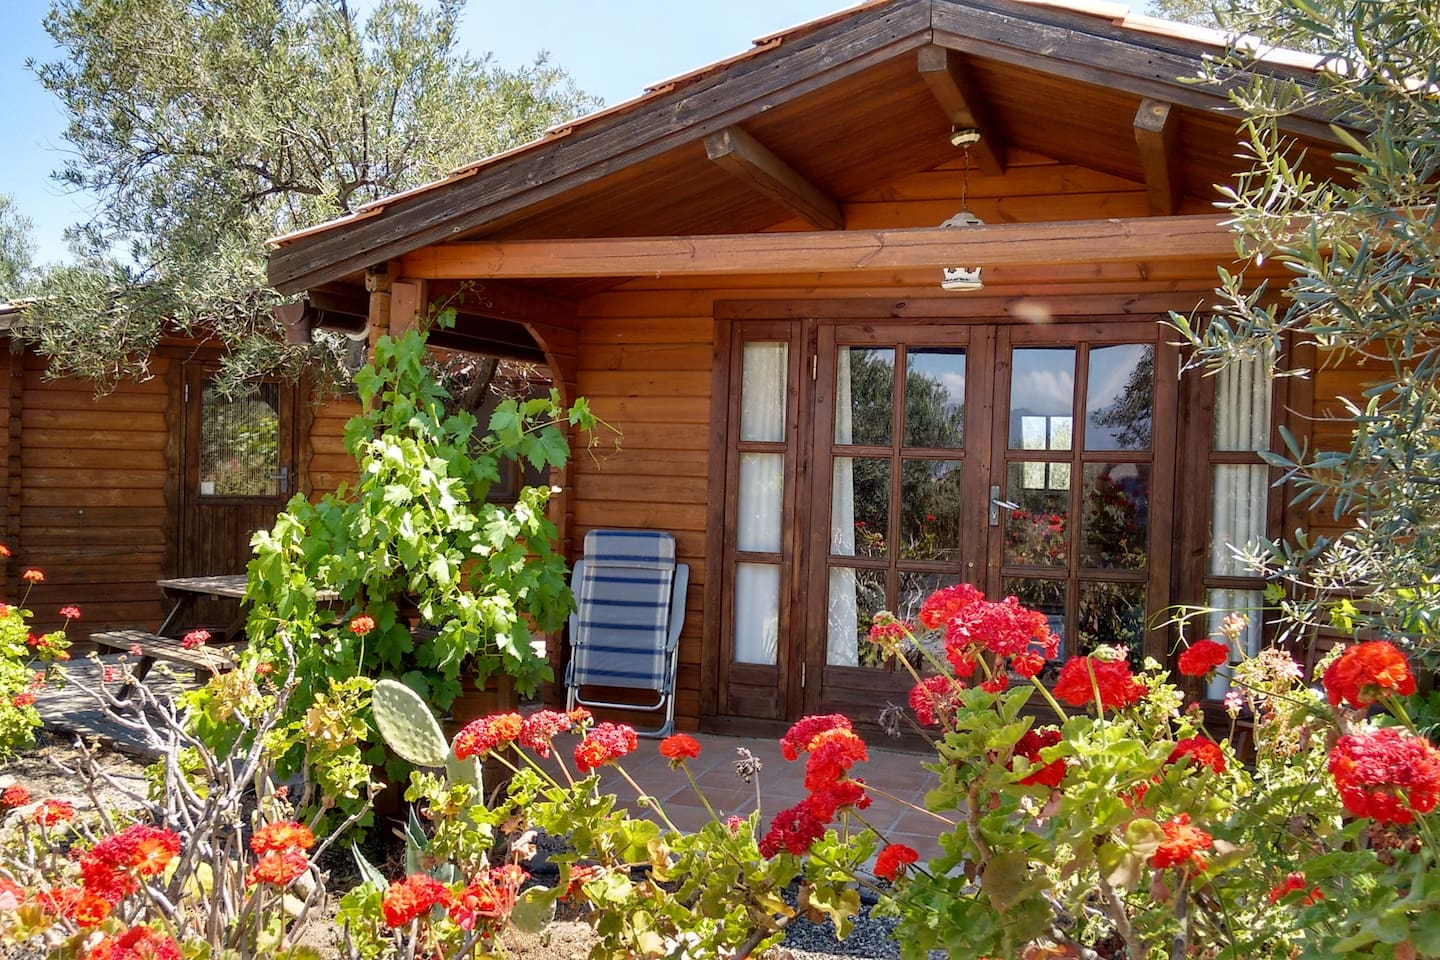 Cabana El Chorro is one of 2 cabanas at Finca La Piedra. It sleeps 4 persons (3 beds in Bedroom and 1 in  Area) but can be rearranged. Cot and High Chair available. Ask for price for baby or child. Owners live on site.